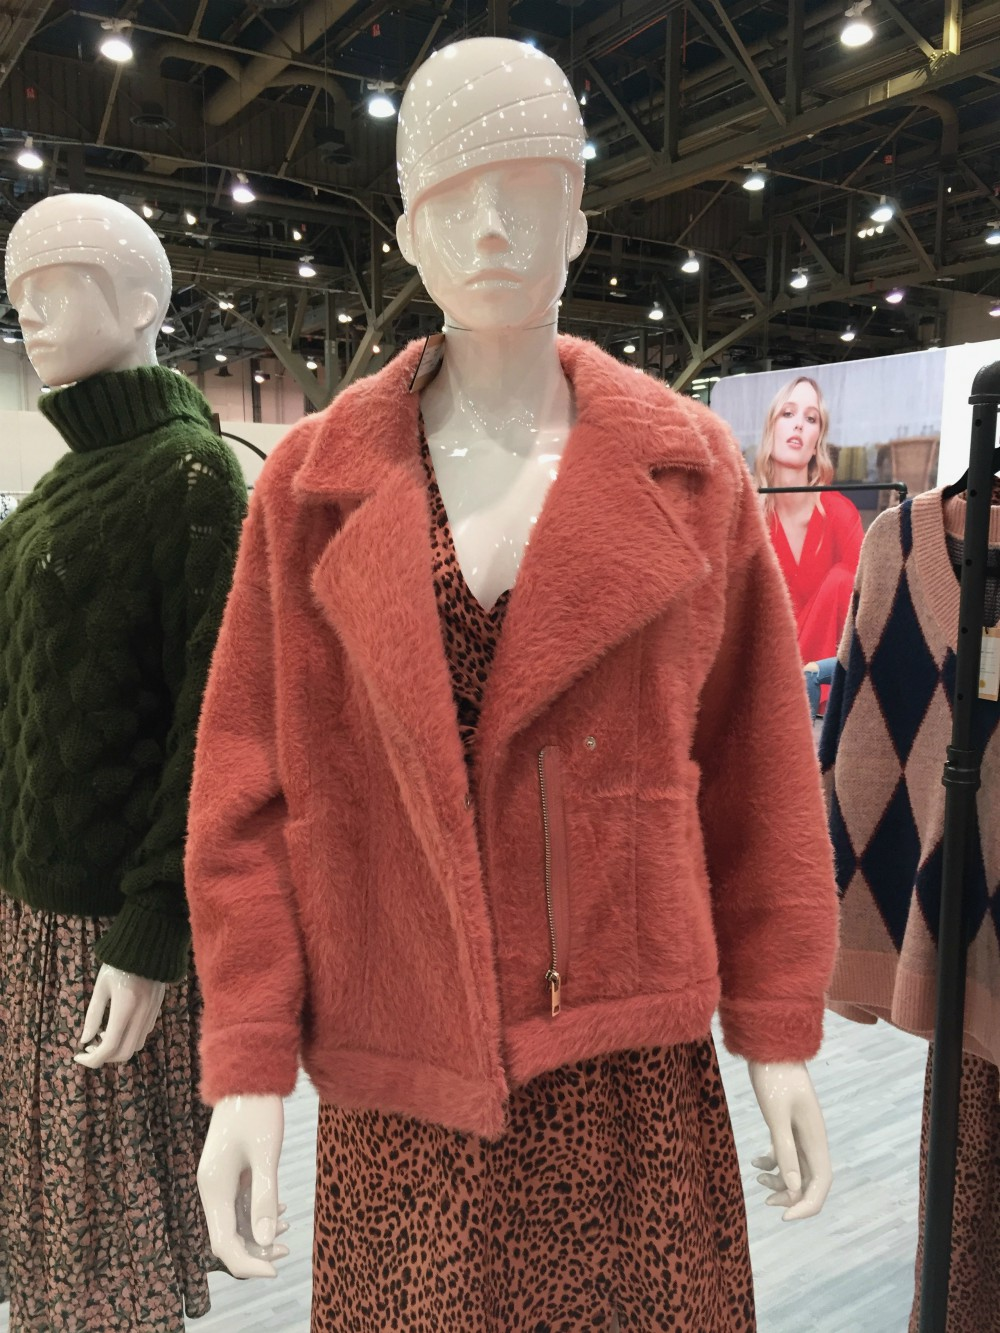 Vegan fur and leather options at MAGIC ranged in color. Brands favored bright hues not often found in the animal kingdom, like mustards and corals.